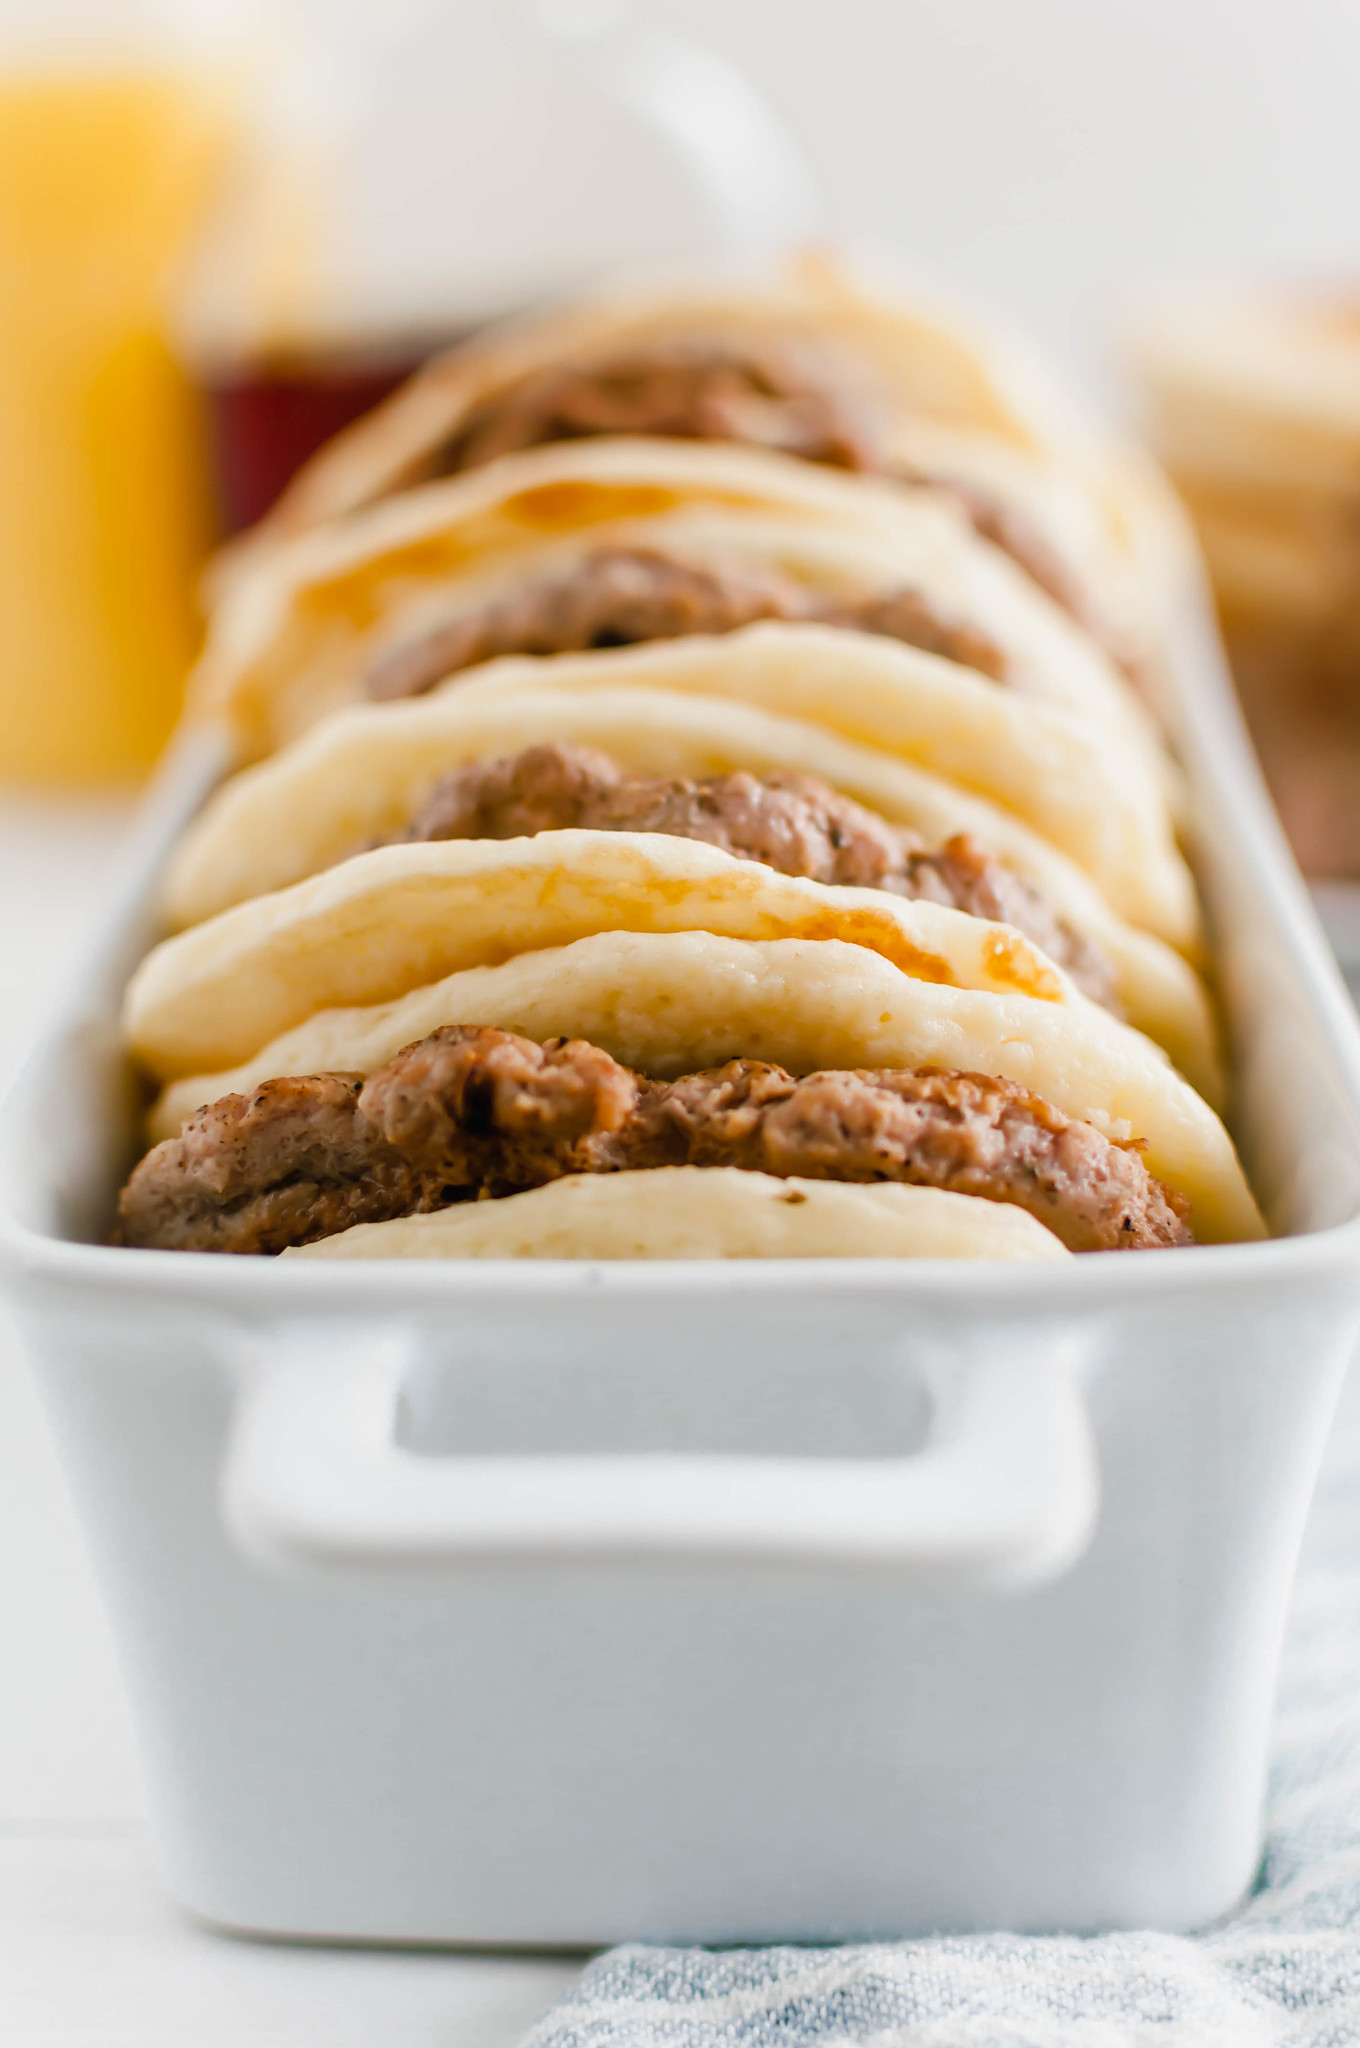 Turkey isn't just for dinner. This Turkey Sausage Breakfast Sandwich is super filling and will keep you energized all day. Juicy homemade turkey sausage patties sandwiched between two fluffy buttermilk pancakes. Maple syrup drizzle optional.